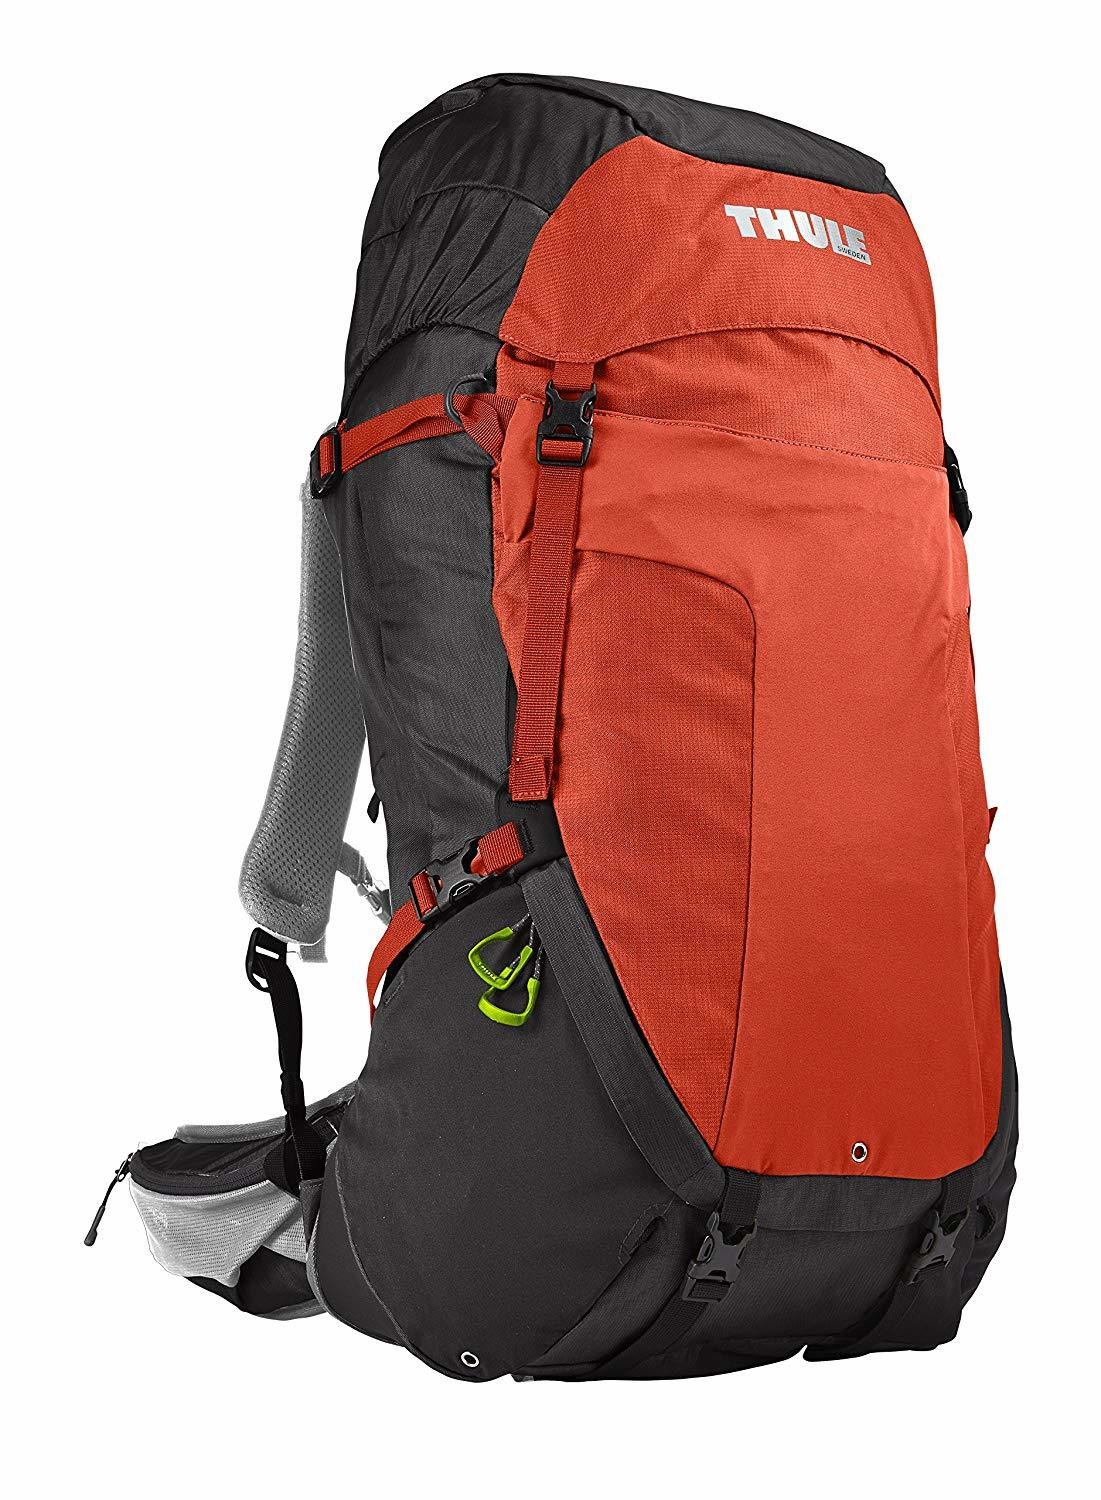 Thule Capstone 32L Premium Backpack _ Adjustable Fit